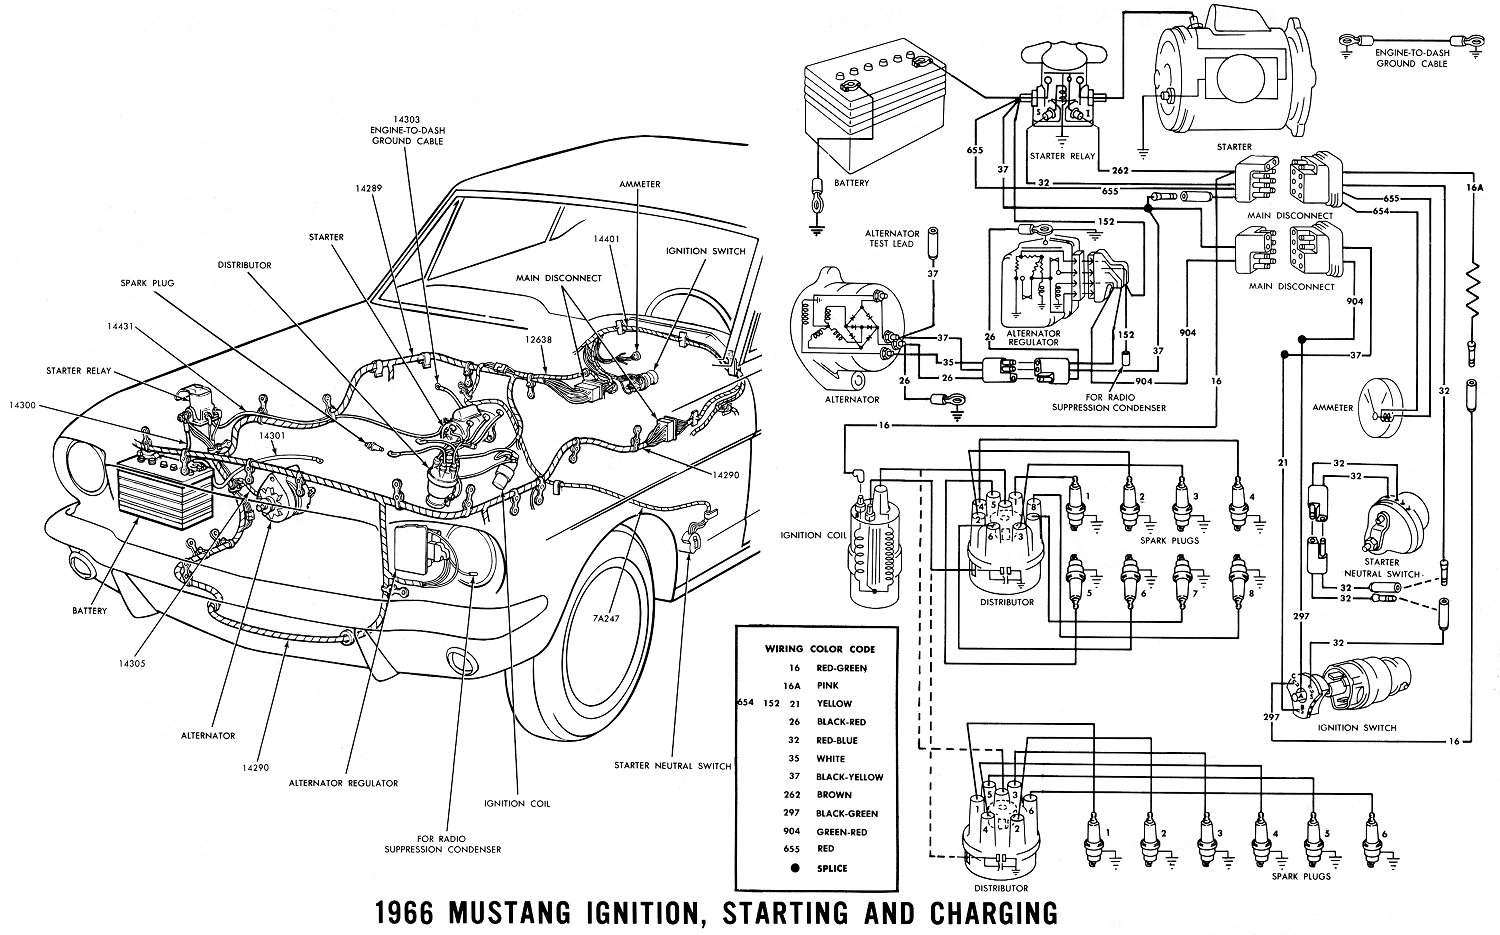 1966 mustang wiring diagrams - average joe restoration,Wiring diagram,Wiring Diagram For A 1968 Ford Mustang